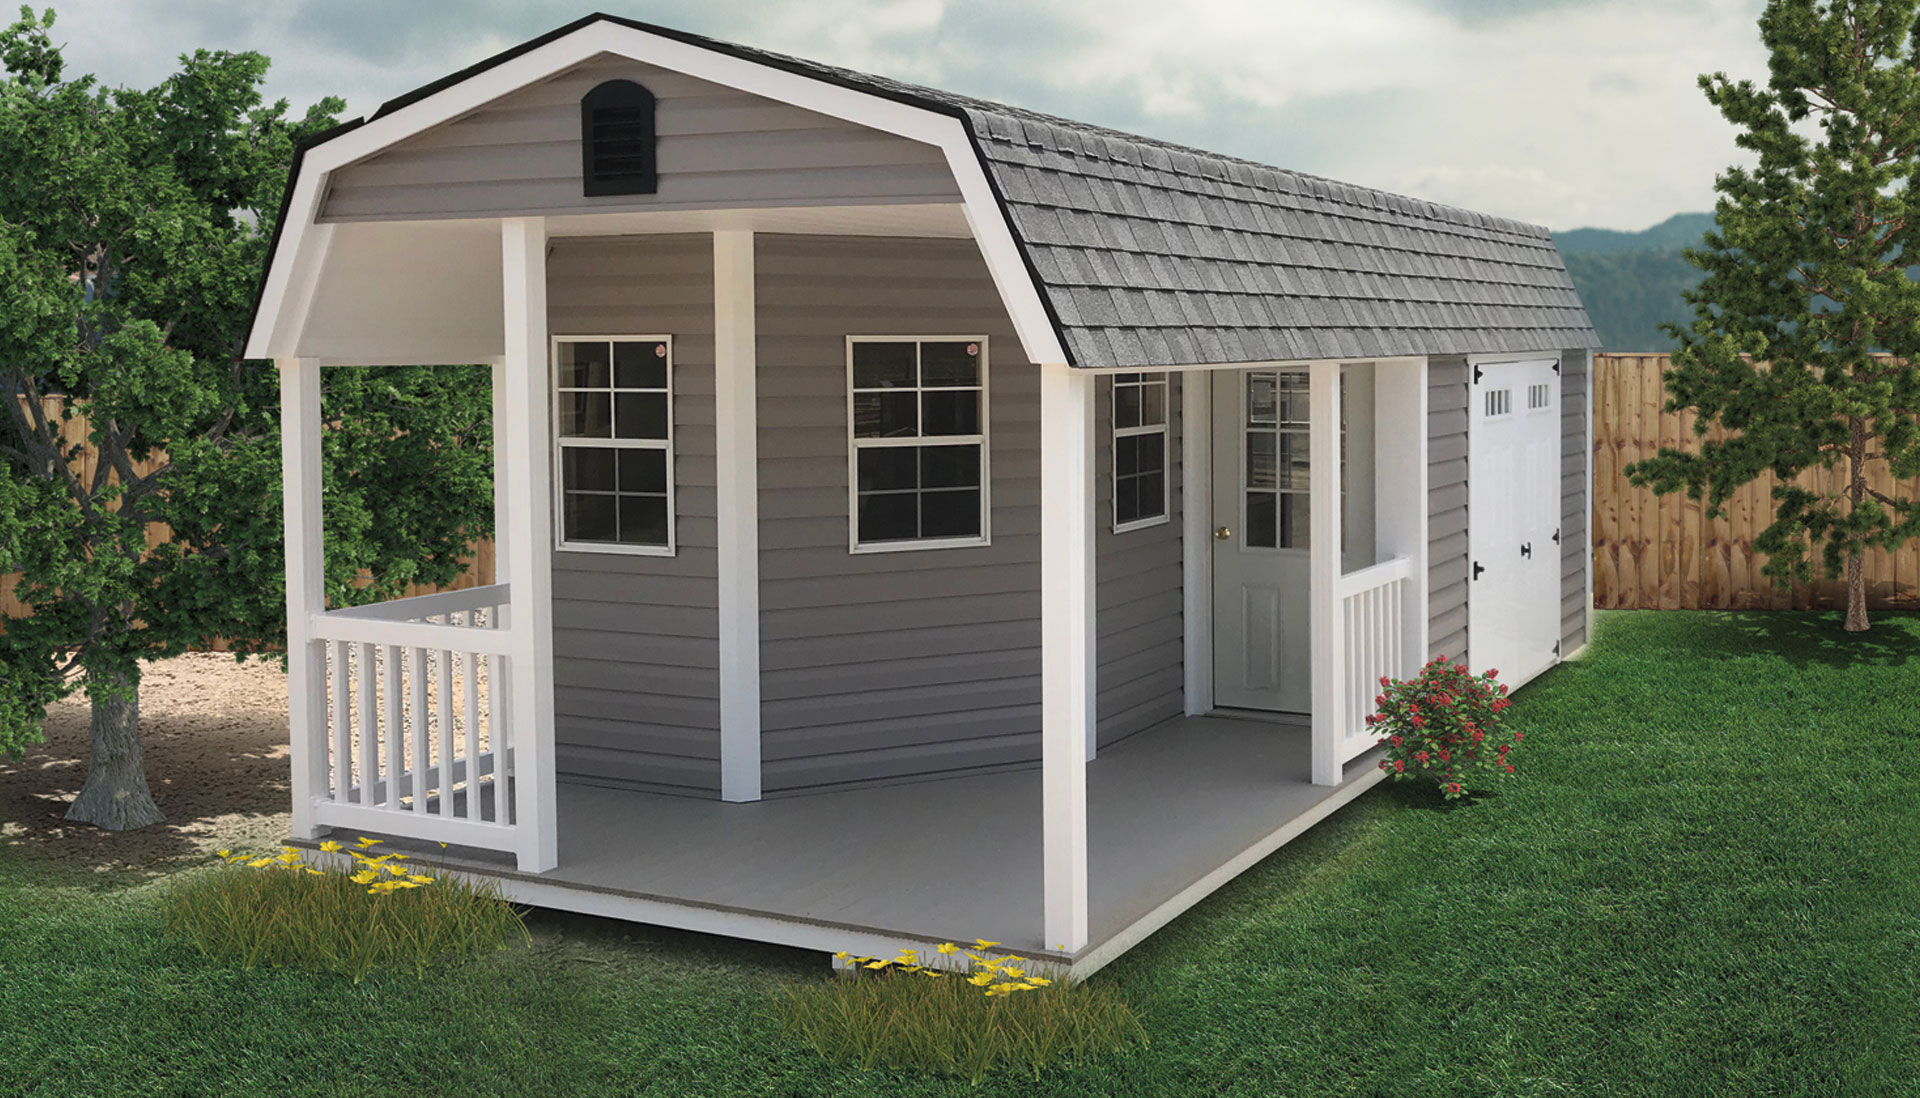 Vinyl Lofted Shed with Deluxe Vinyl Porch. Shown with optional transom glass in the double doors.